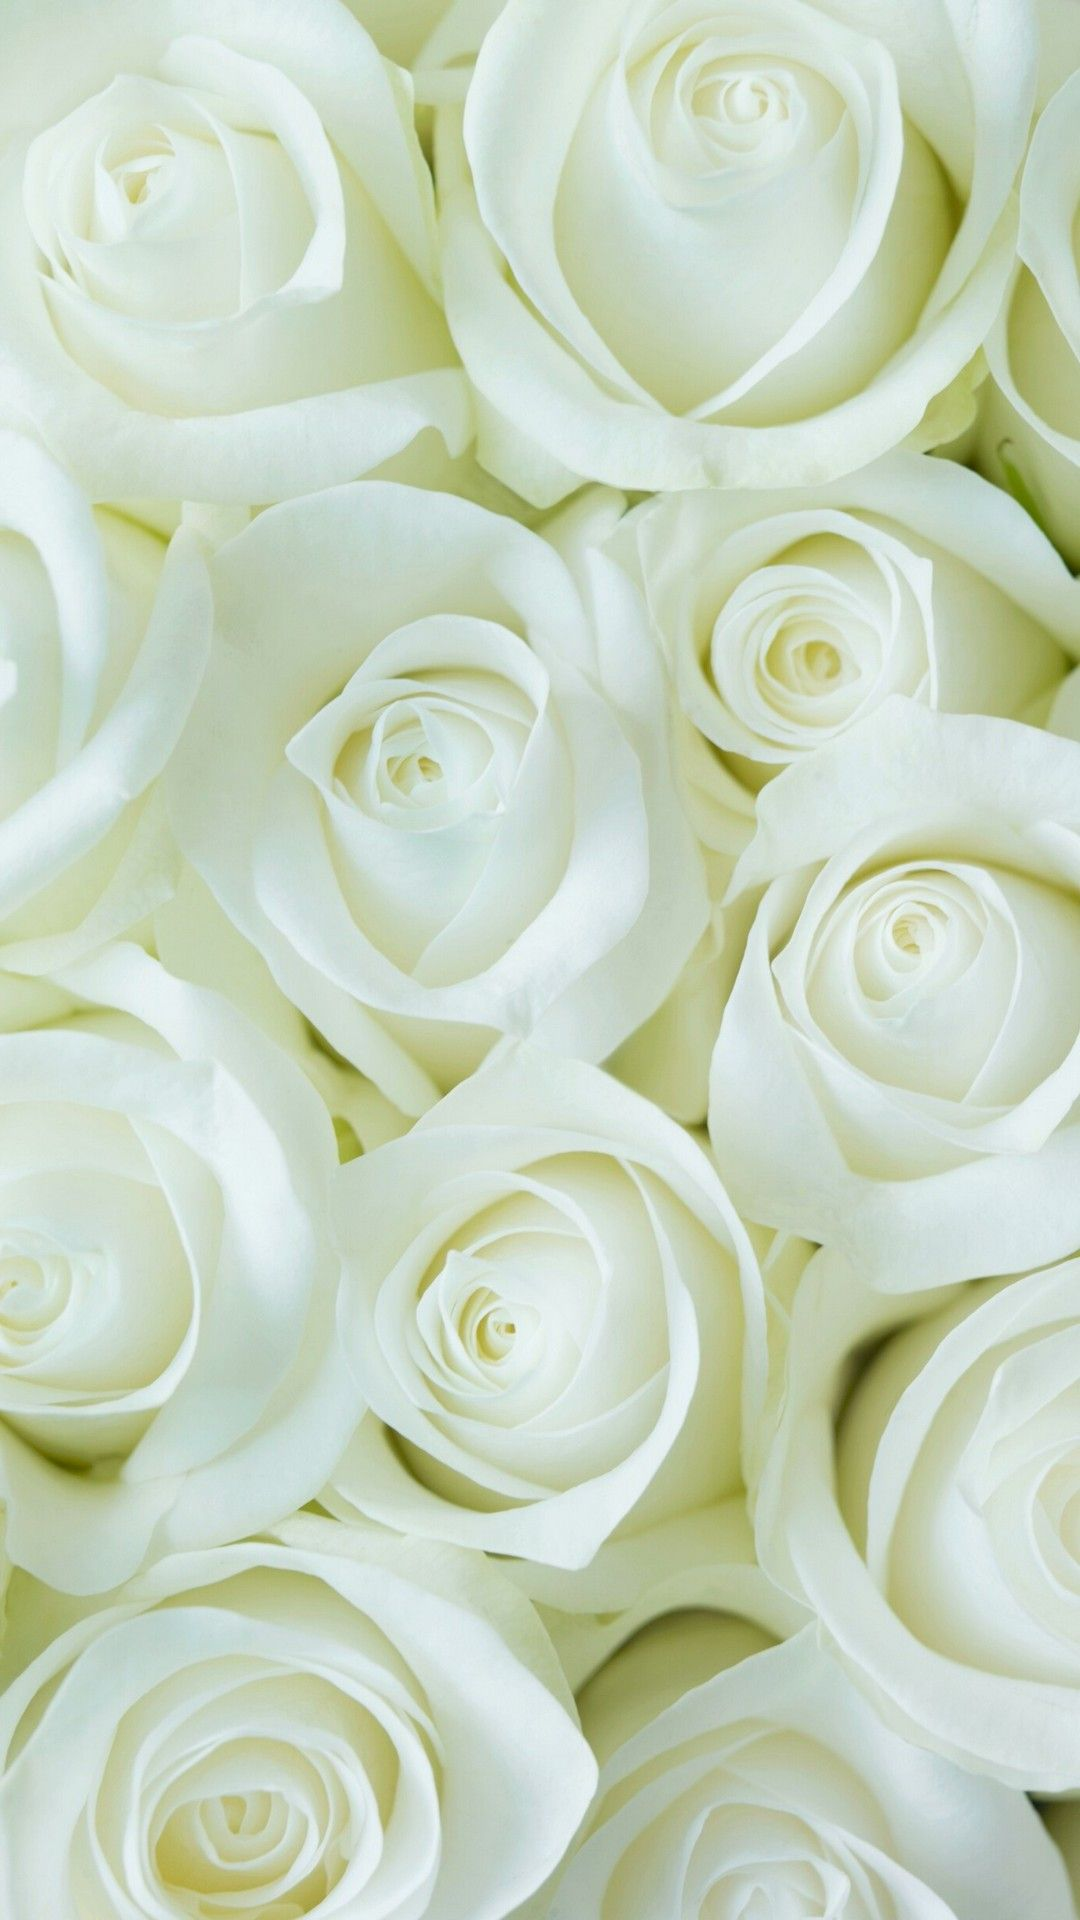 White Flower Wallpaper For Mobile Android Best Hd Wallpapers Rose Flower Wallpaper White Roses Wallpaper Flower Wallpaper